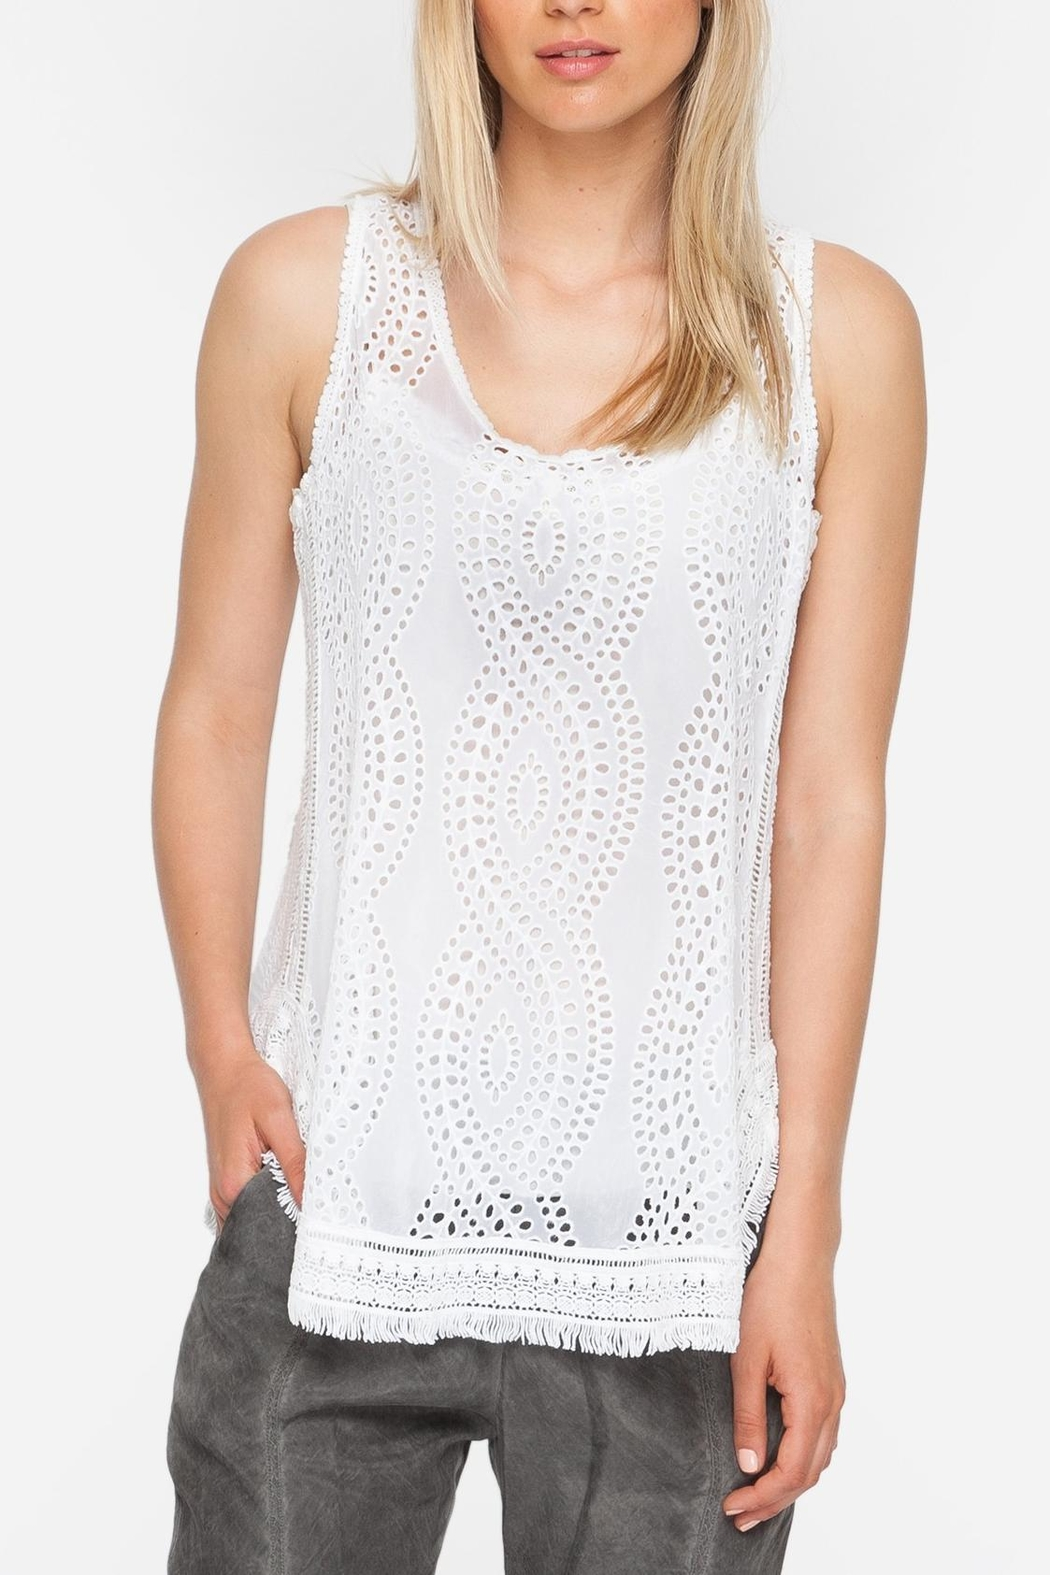 Johnny Was Eyelet Embroidered Tank - Main Image